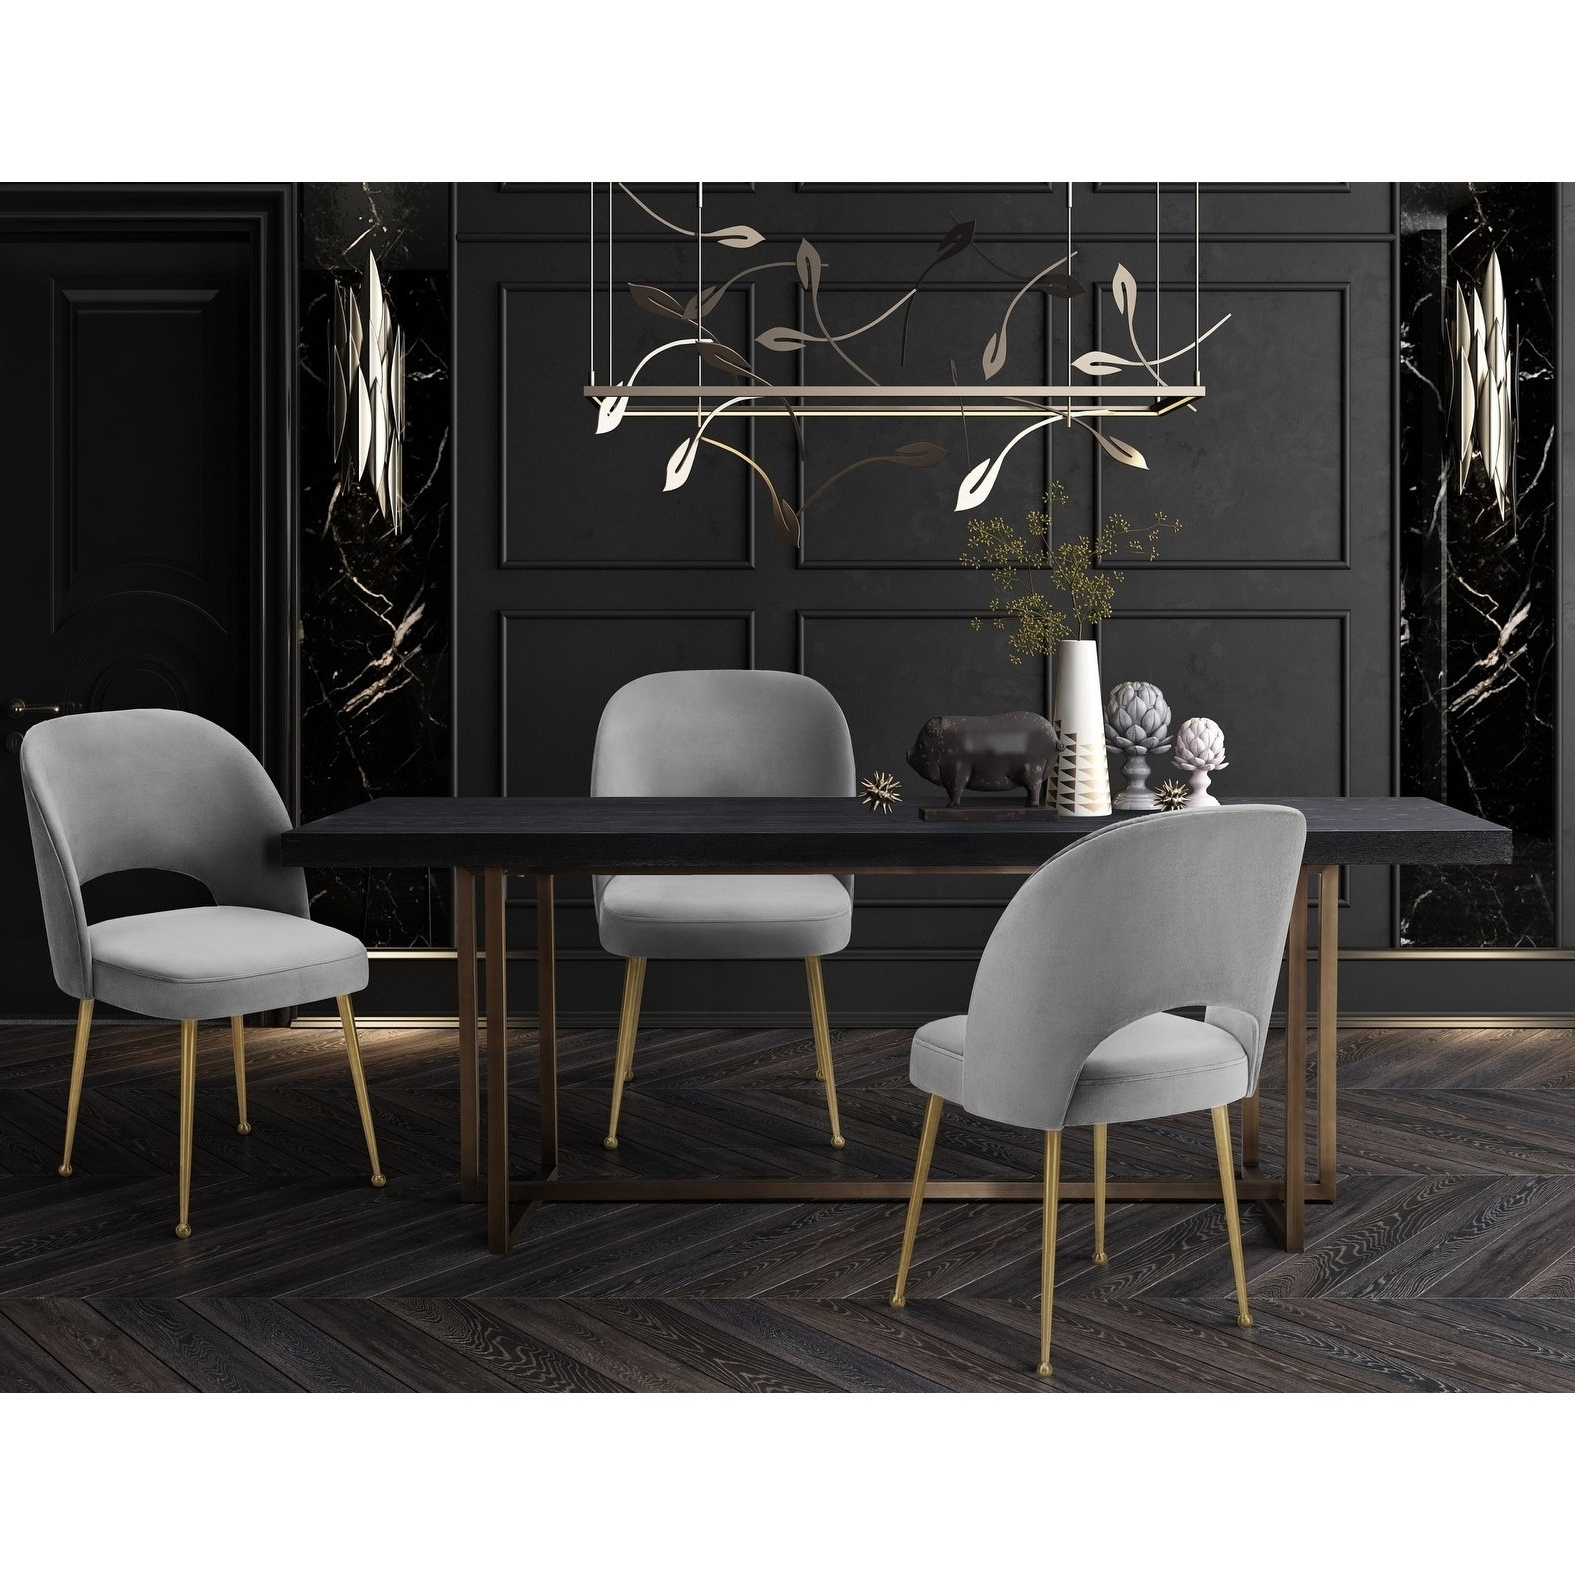 Pilo Grey Side Chairs Within Preferred Shop Swell Light Grey Velvet Chair – Free Shipping Today – Overstock (View 10 of 20)